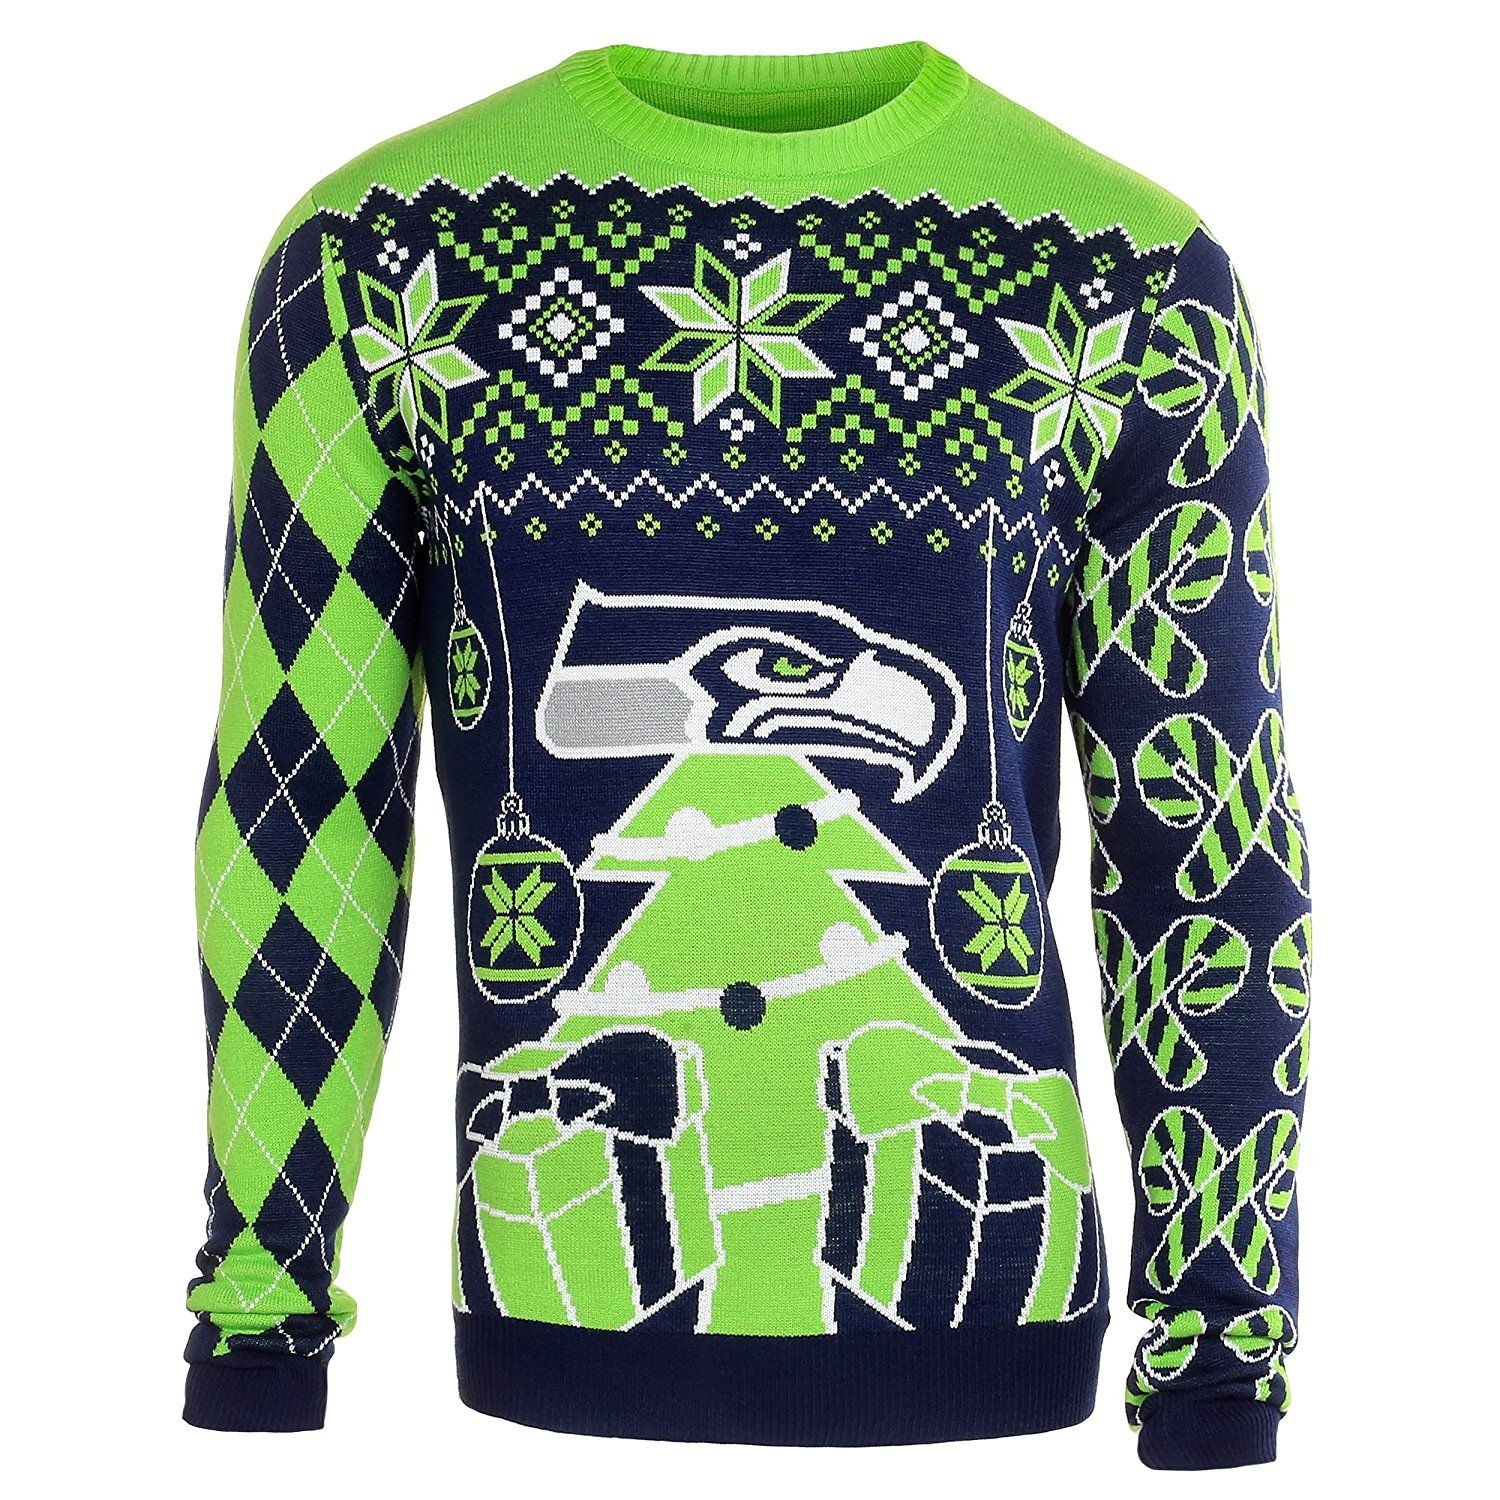 nfl football mens ugly holiday christmas tree ornament sweater pick team seattle seahawks medium - Seahawks Christmas Sweater